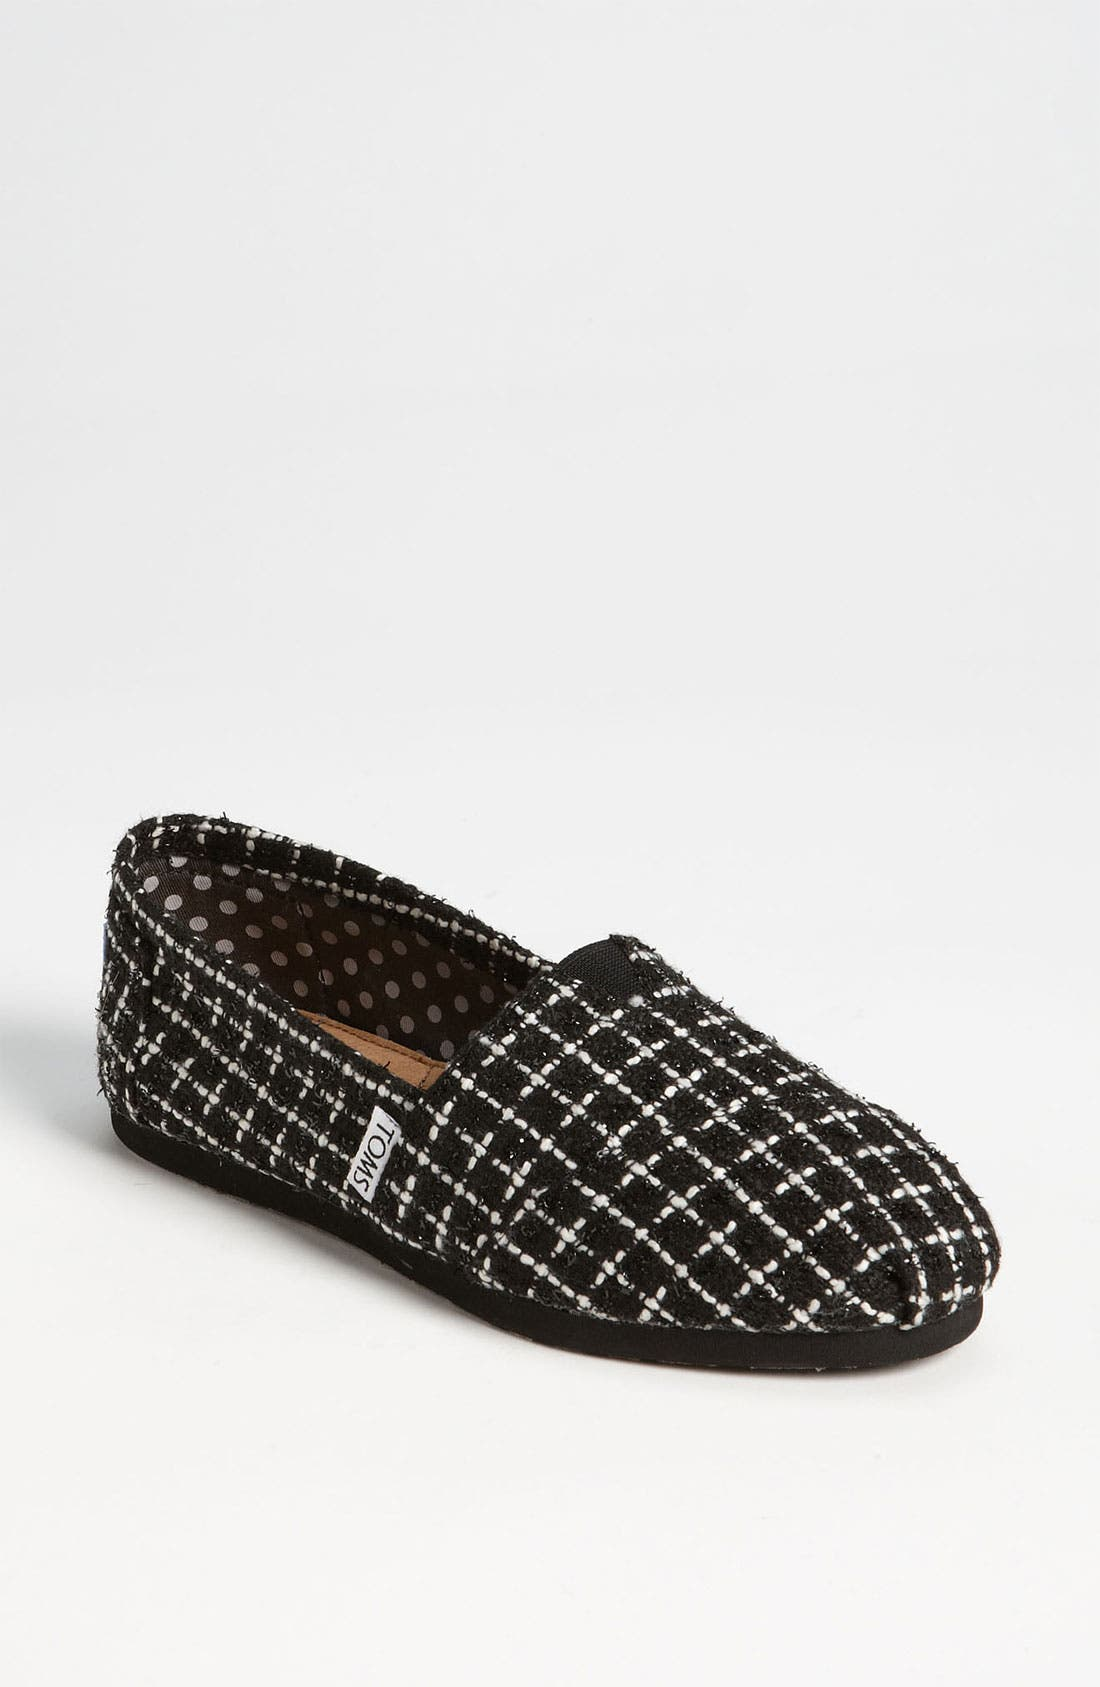 Alternate Image 1 Selected - TOMS 'Classic' Tweed Slip-On (Women)